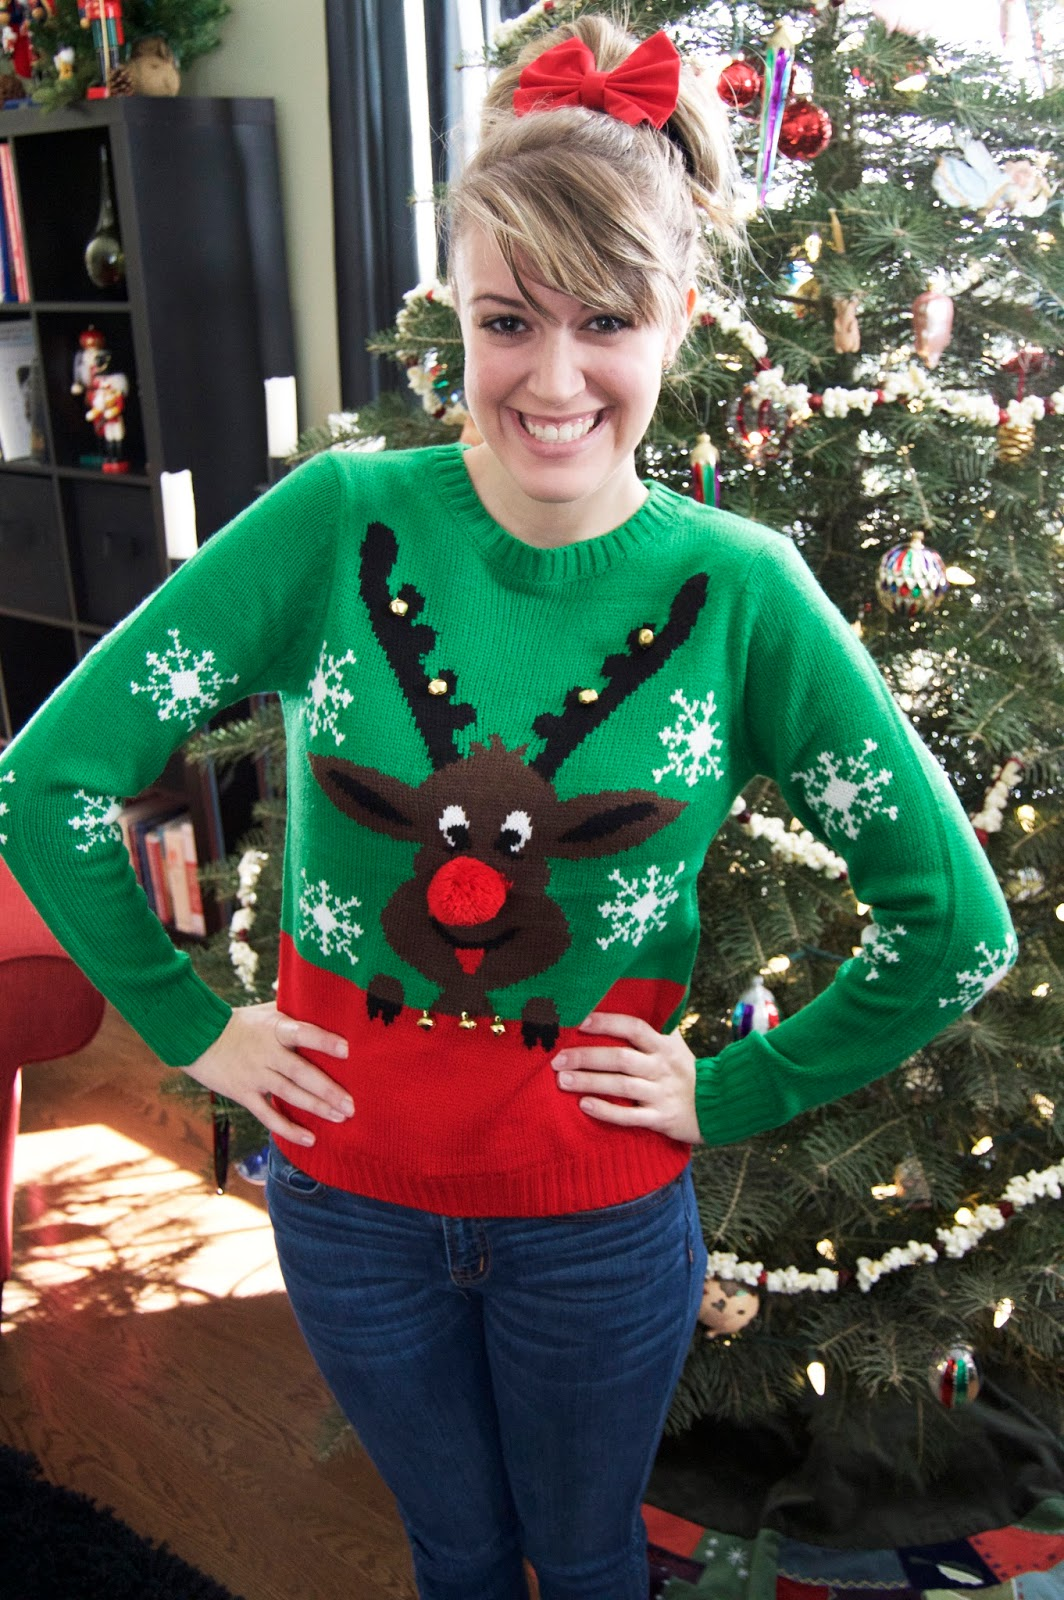 dress in sparkles: The (Not-So) Ugly Christmas Sweater